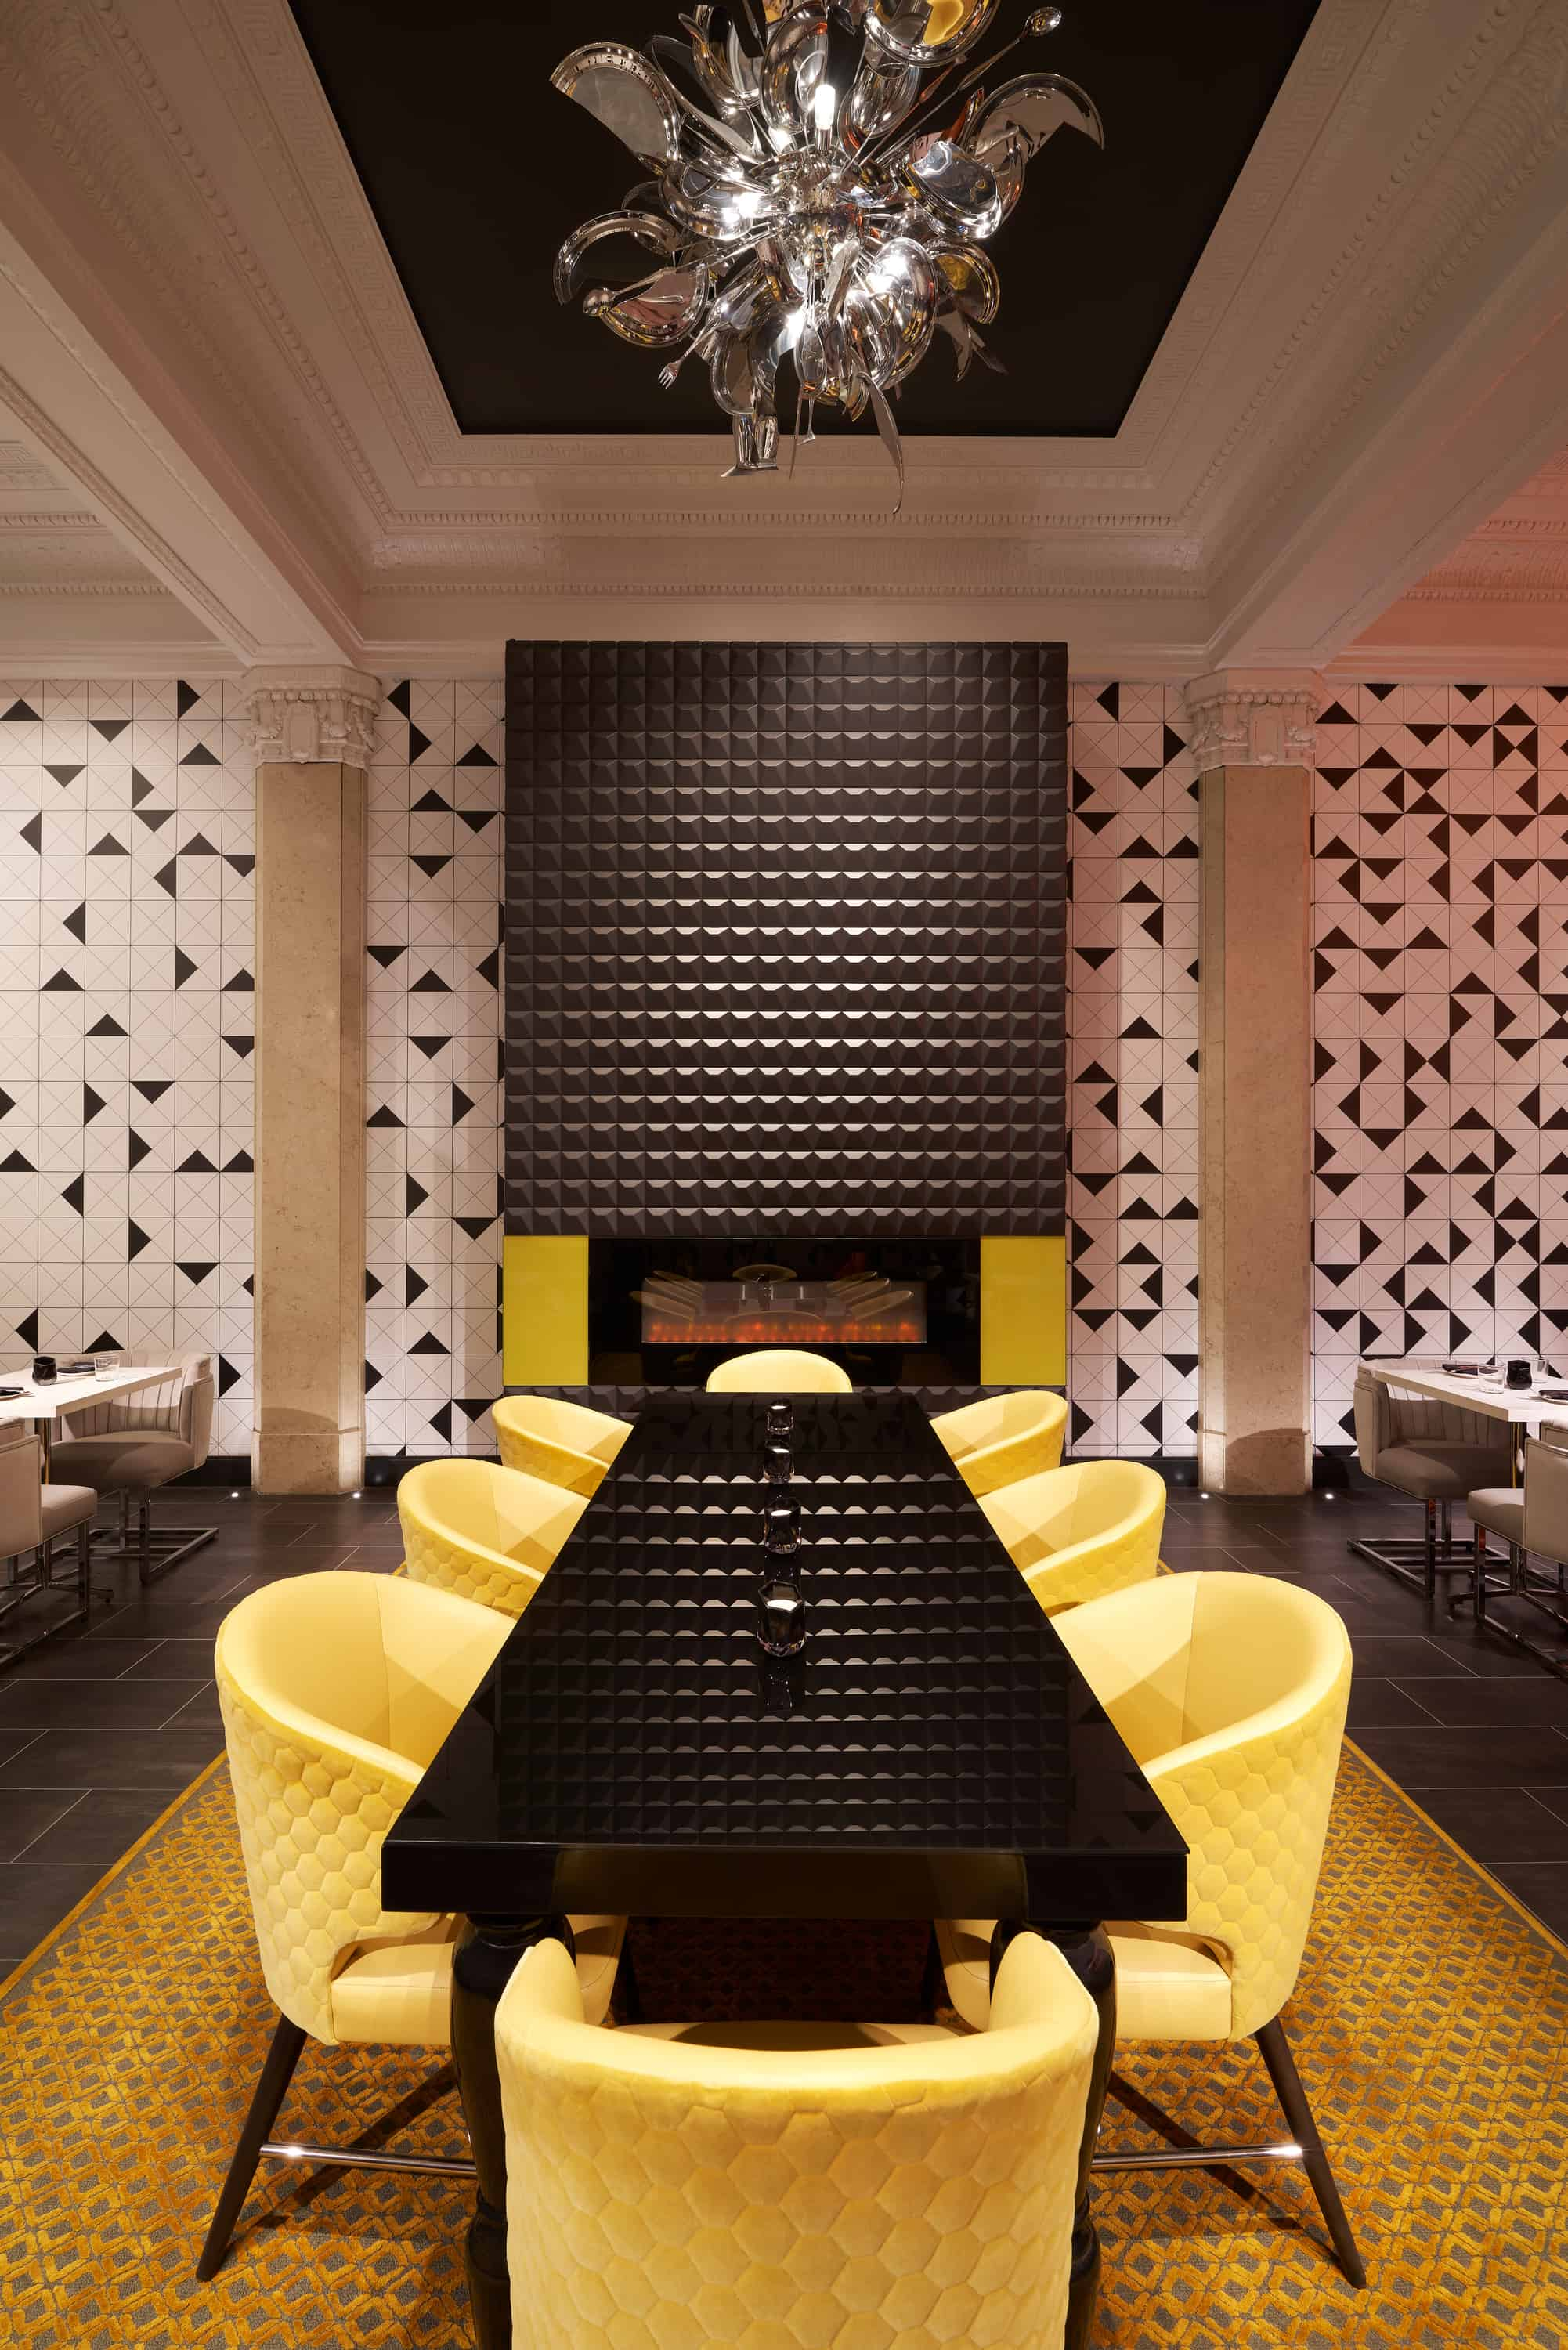 Lobby lounge with yellow chairs, white and black patterned walls and fireplace